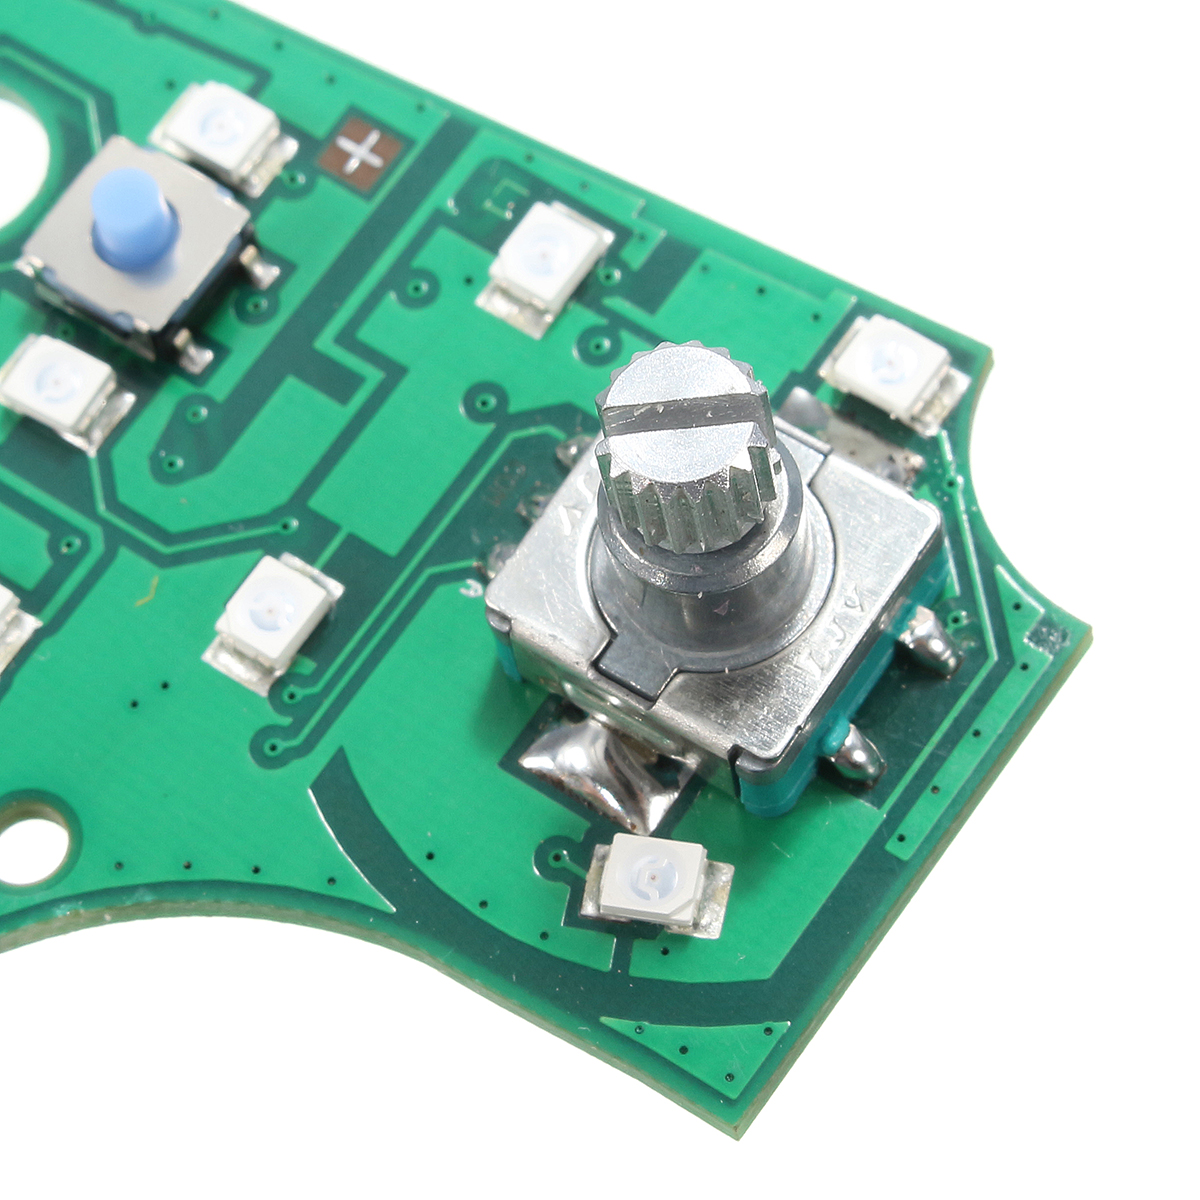 MMI Multimedia Interface E380 Control Panel Circuit Board GPS Navigation  Module for Audi A8 A8L S8